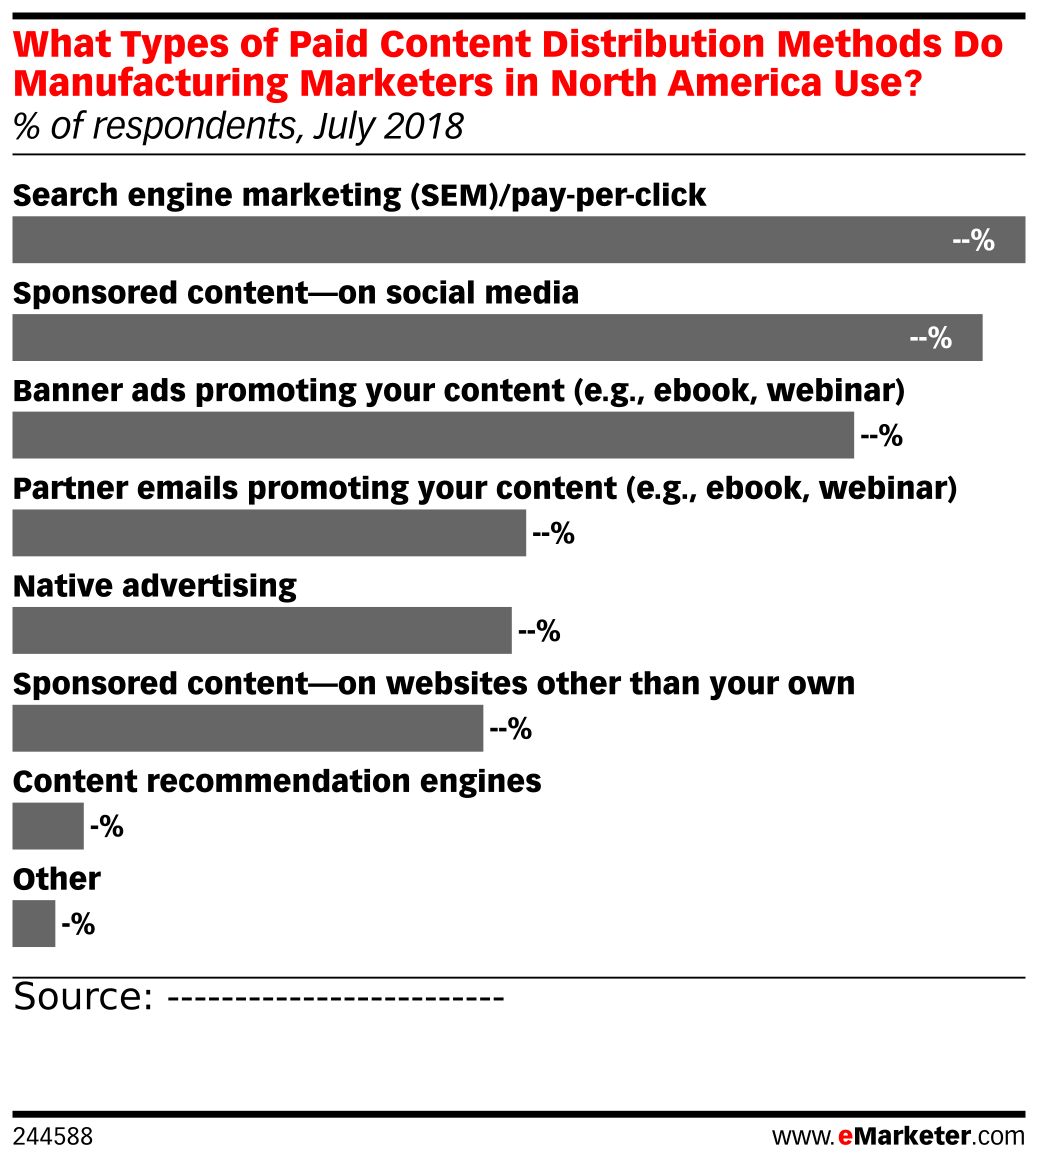 What Types of Paid Content Distribution Methods Do Manufacturing Marketers in North America Use? (% of respondents, July 2018)